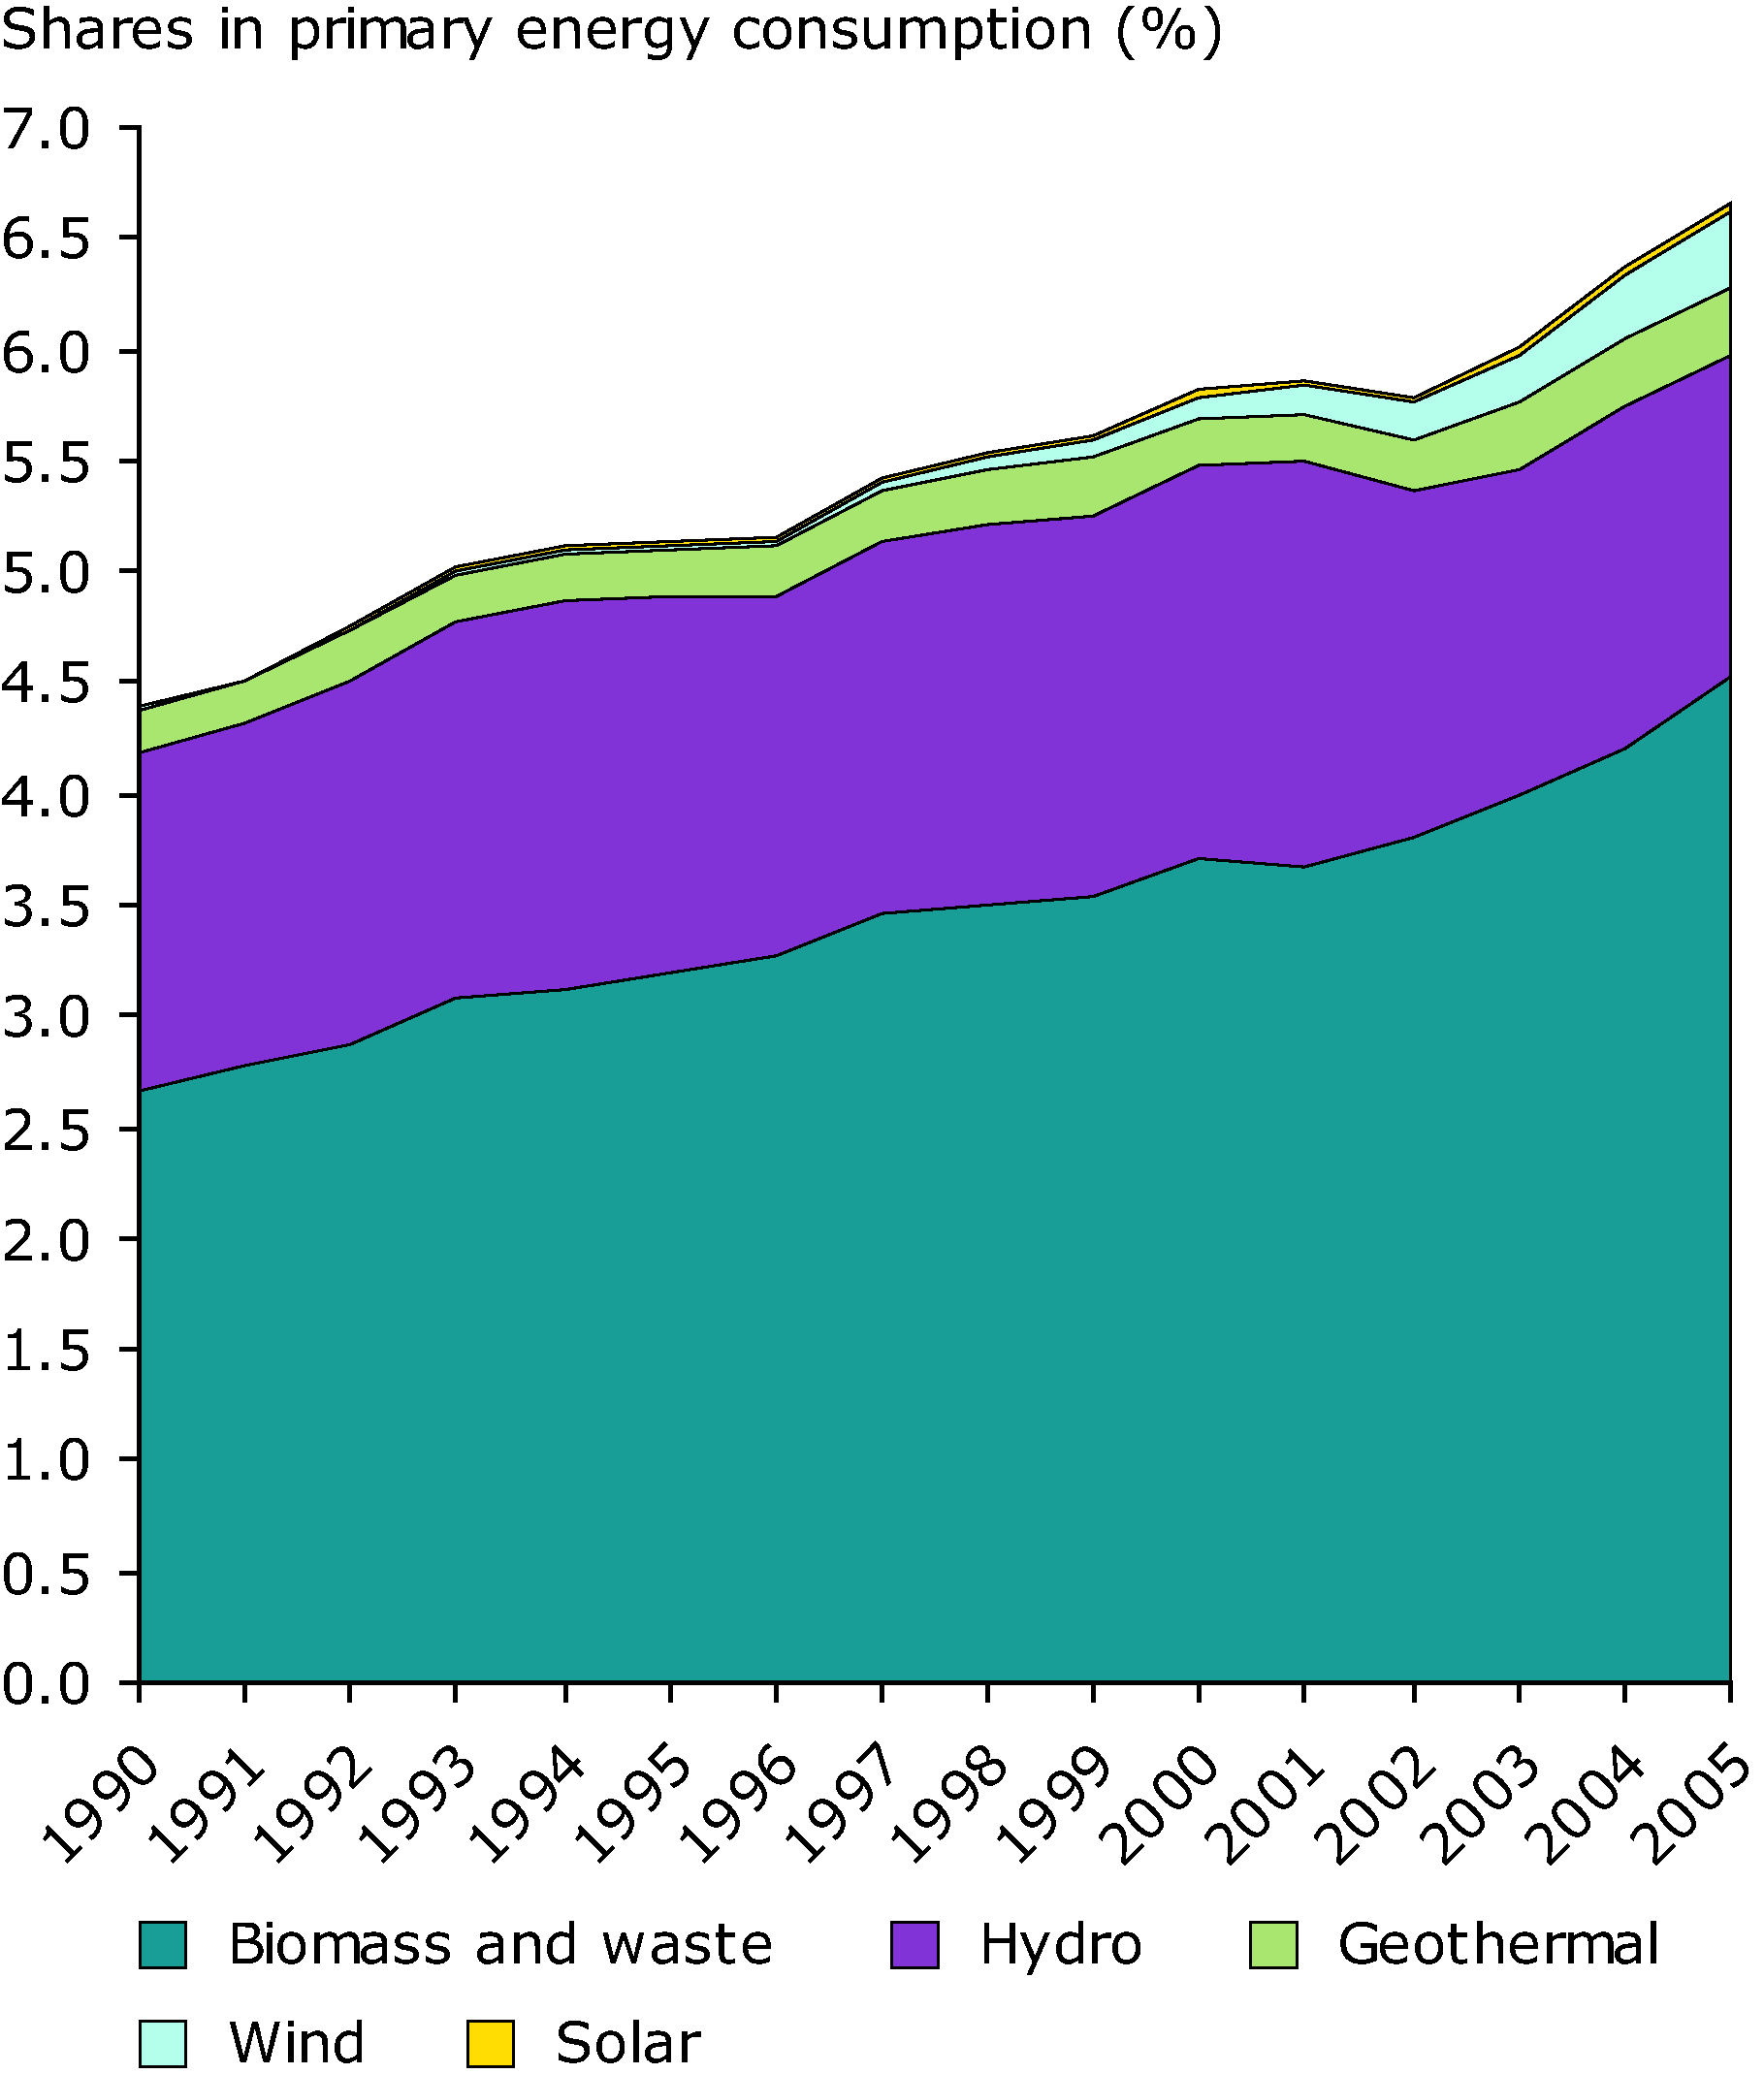 Contribution of renewable energy sources to primary energy consumption in the EU-27, 1990-2005